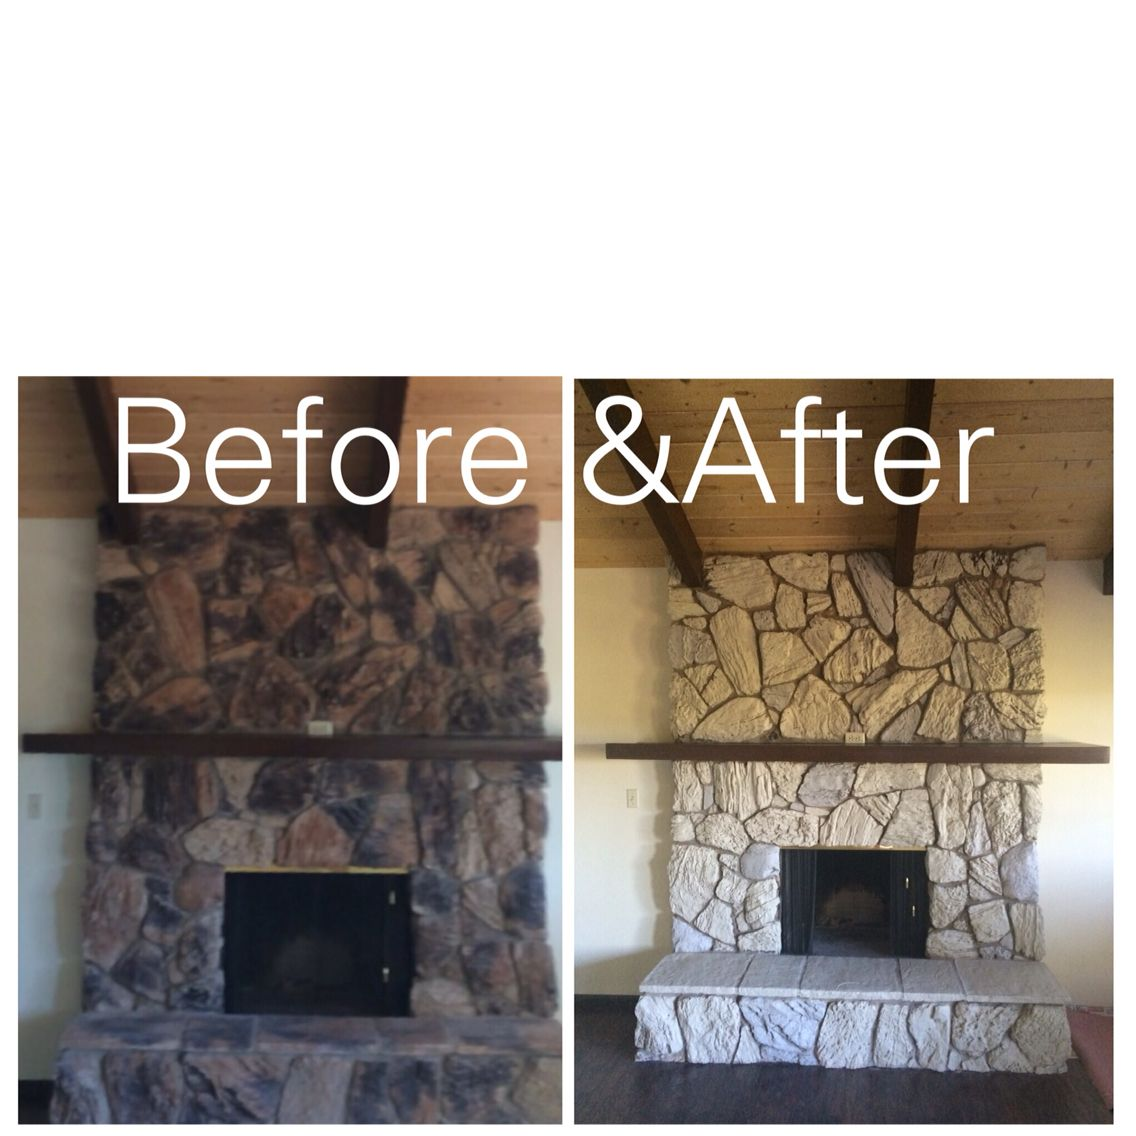 Heres an inexpensive way to update an ugly rock fireplace from the heres an inexpensive way to update an ugly rock fireplace from the 80s 2 colors of paint were used benjamin moore glacial till and valspar montpelier solutioingenieria Choice Image